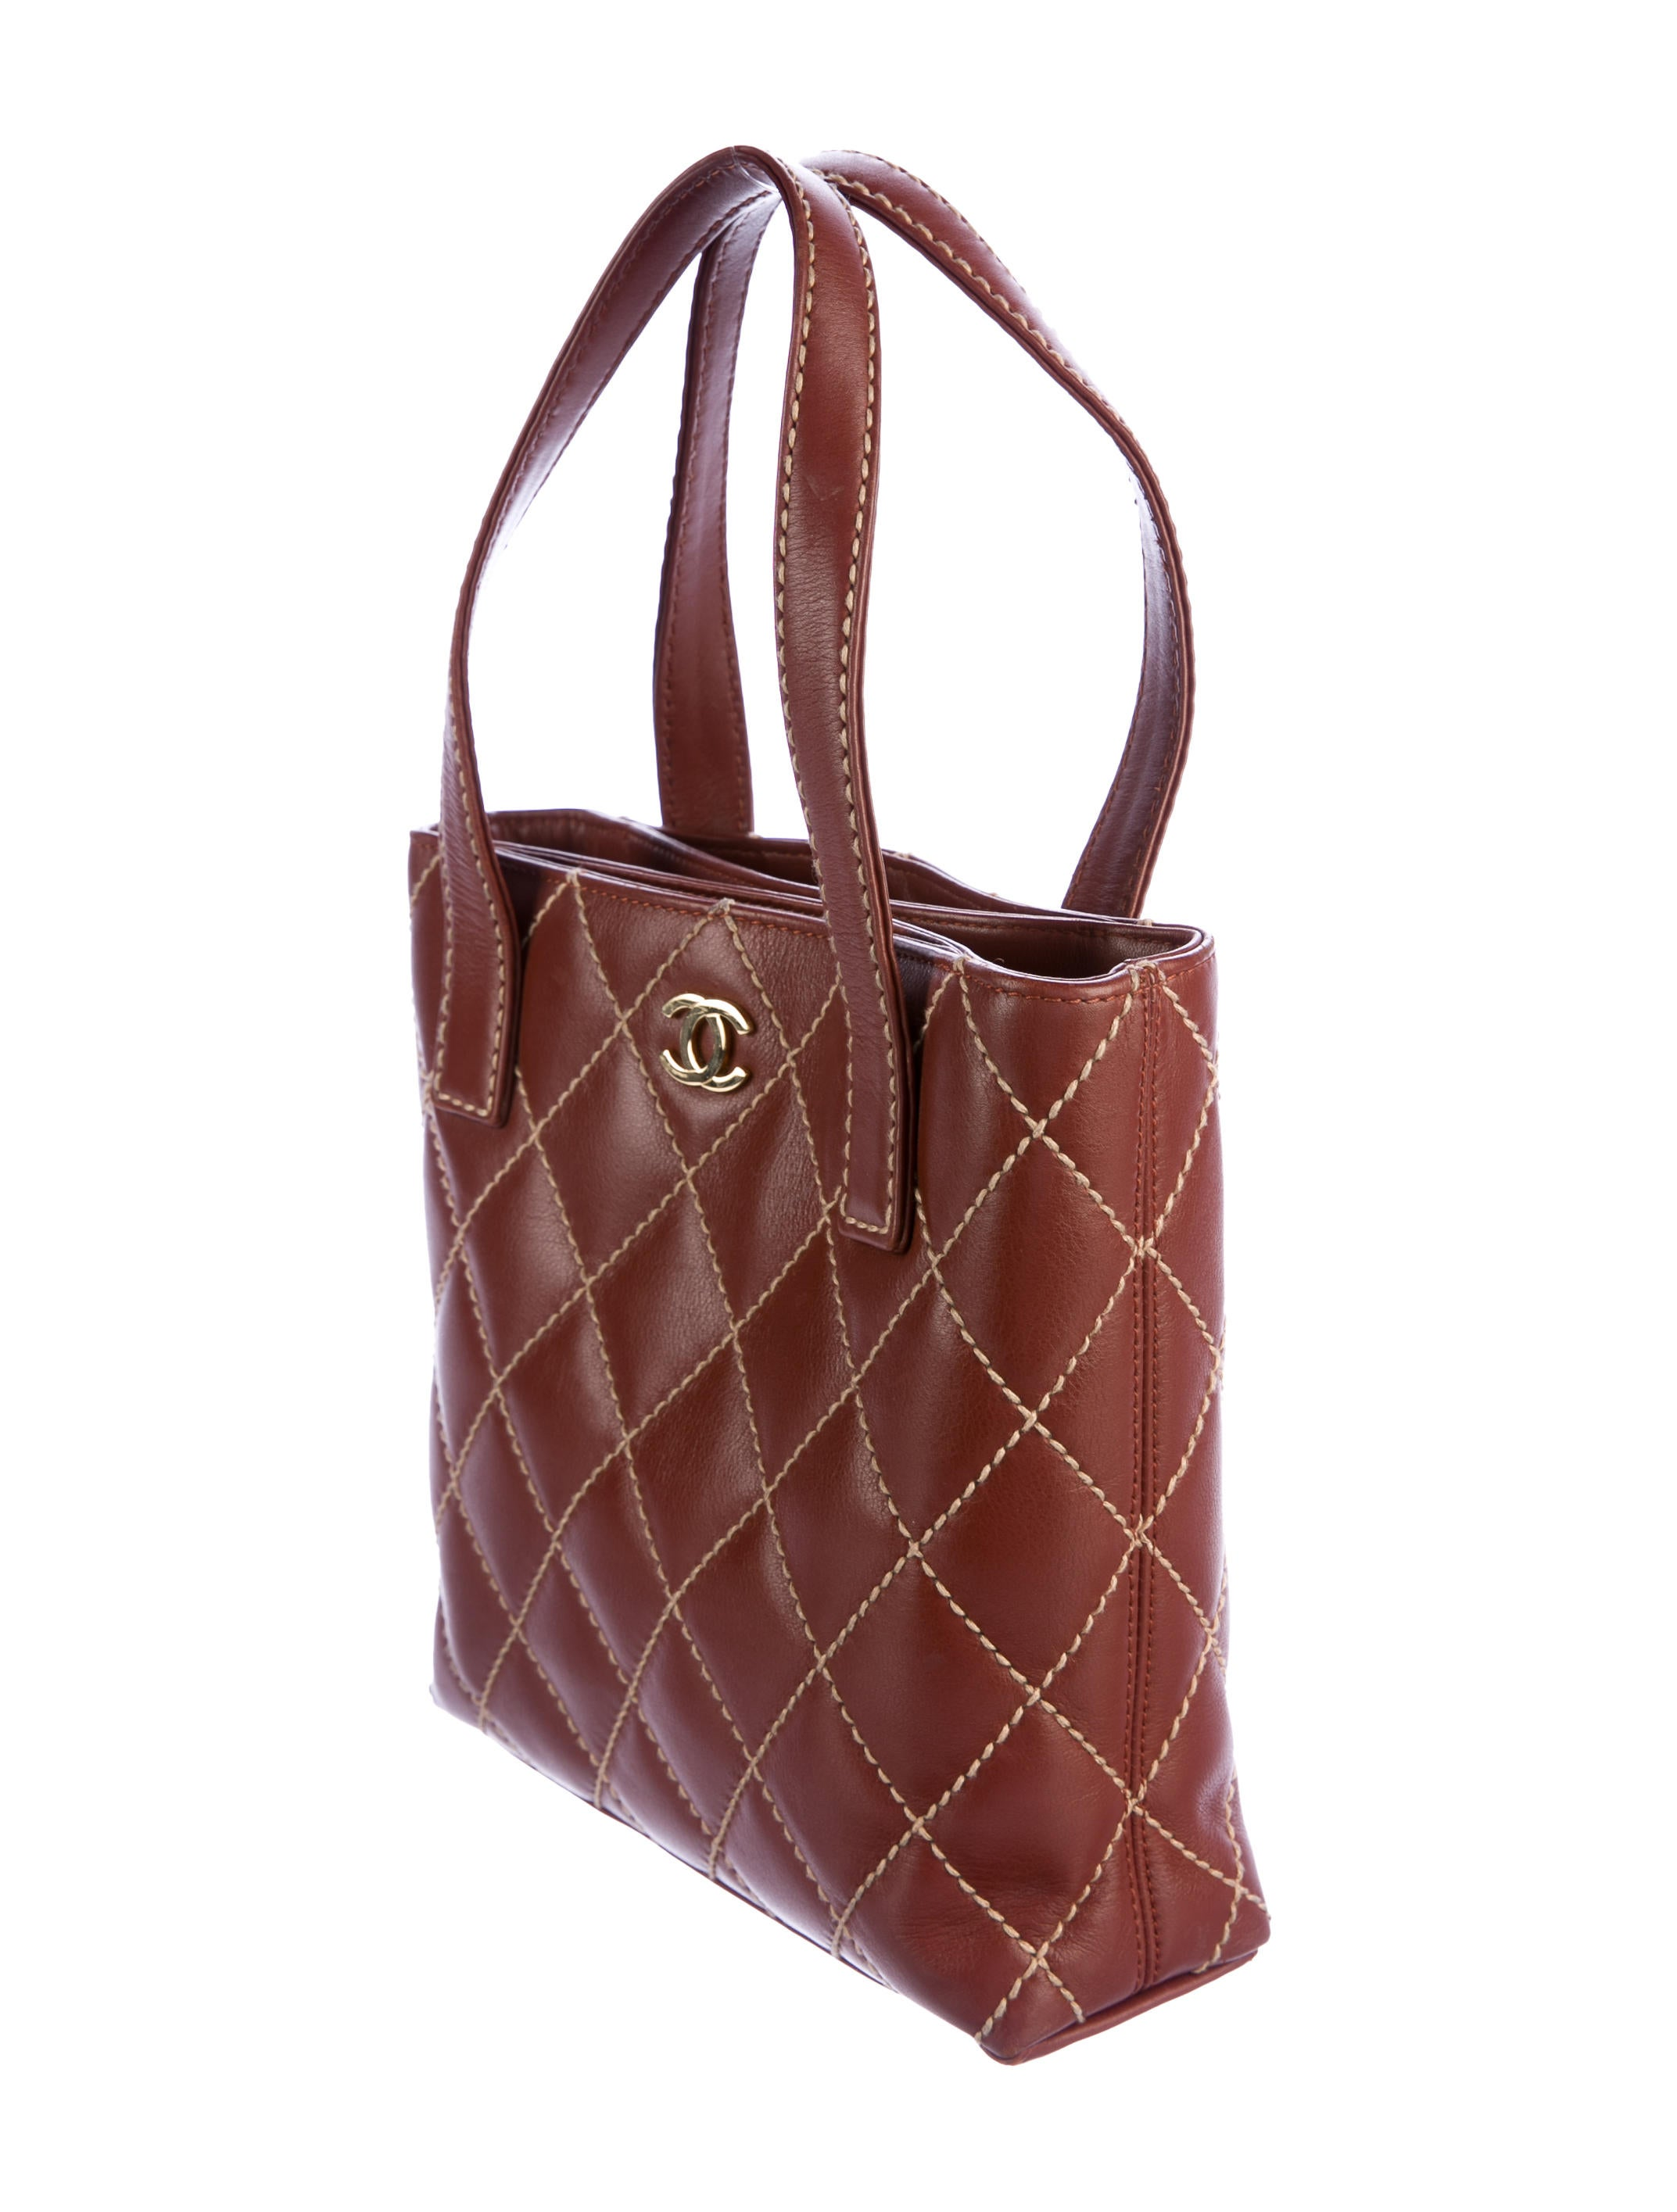 cbbf893ce192 Small Chanel Tote Bag   Stanford Center for Opportunity Policy in ...